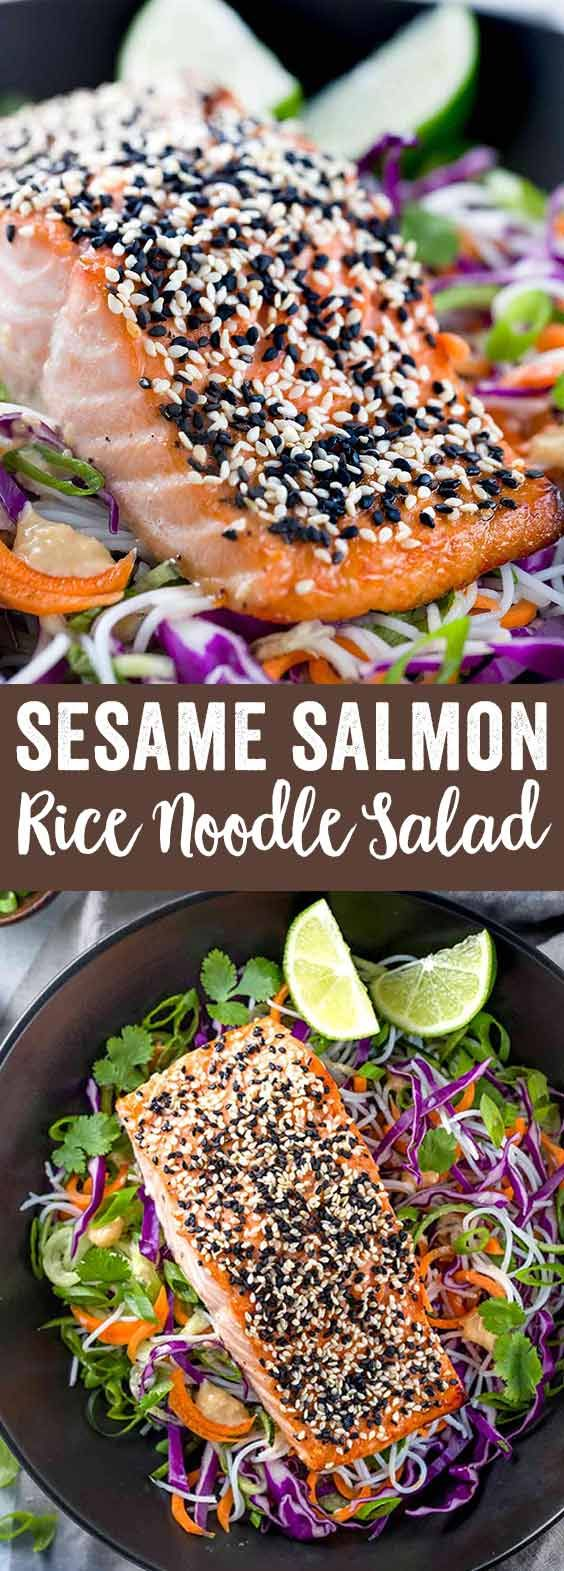 Sesame salmon served with a cold rice noodle salad. Crunchy cabbage and carrots tossed in a delicious honey lime dressing.  via @foodiegavin